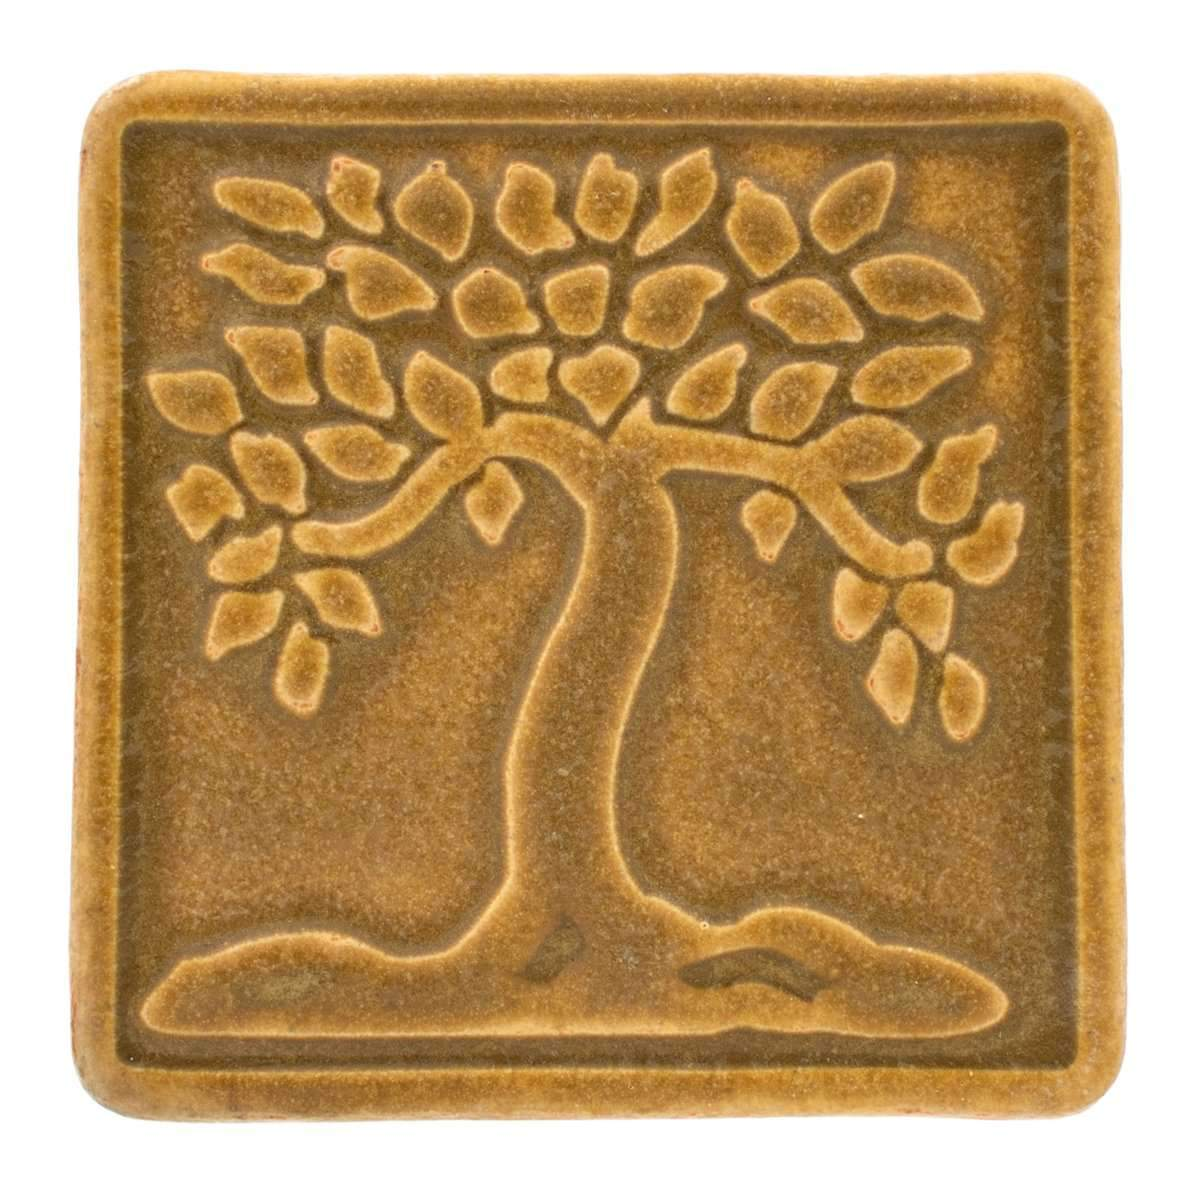 4x4 Botanical Tree Pewabic Tile - Wheat - Pure Detroit